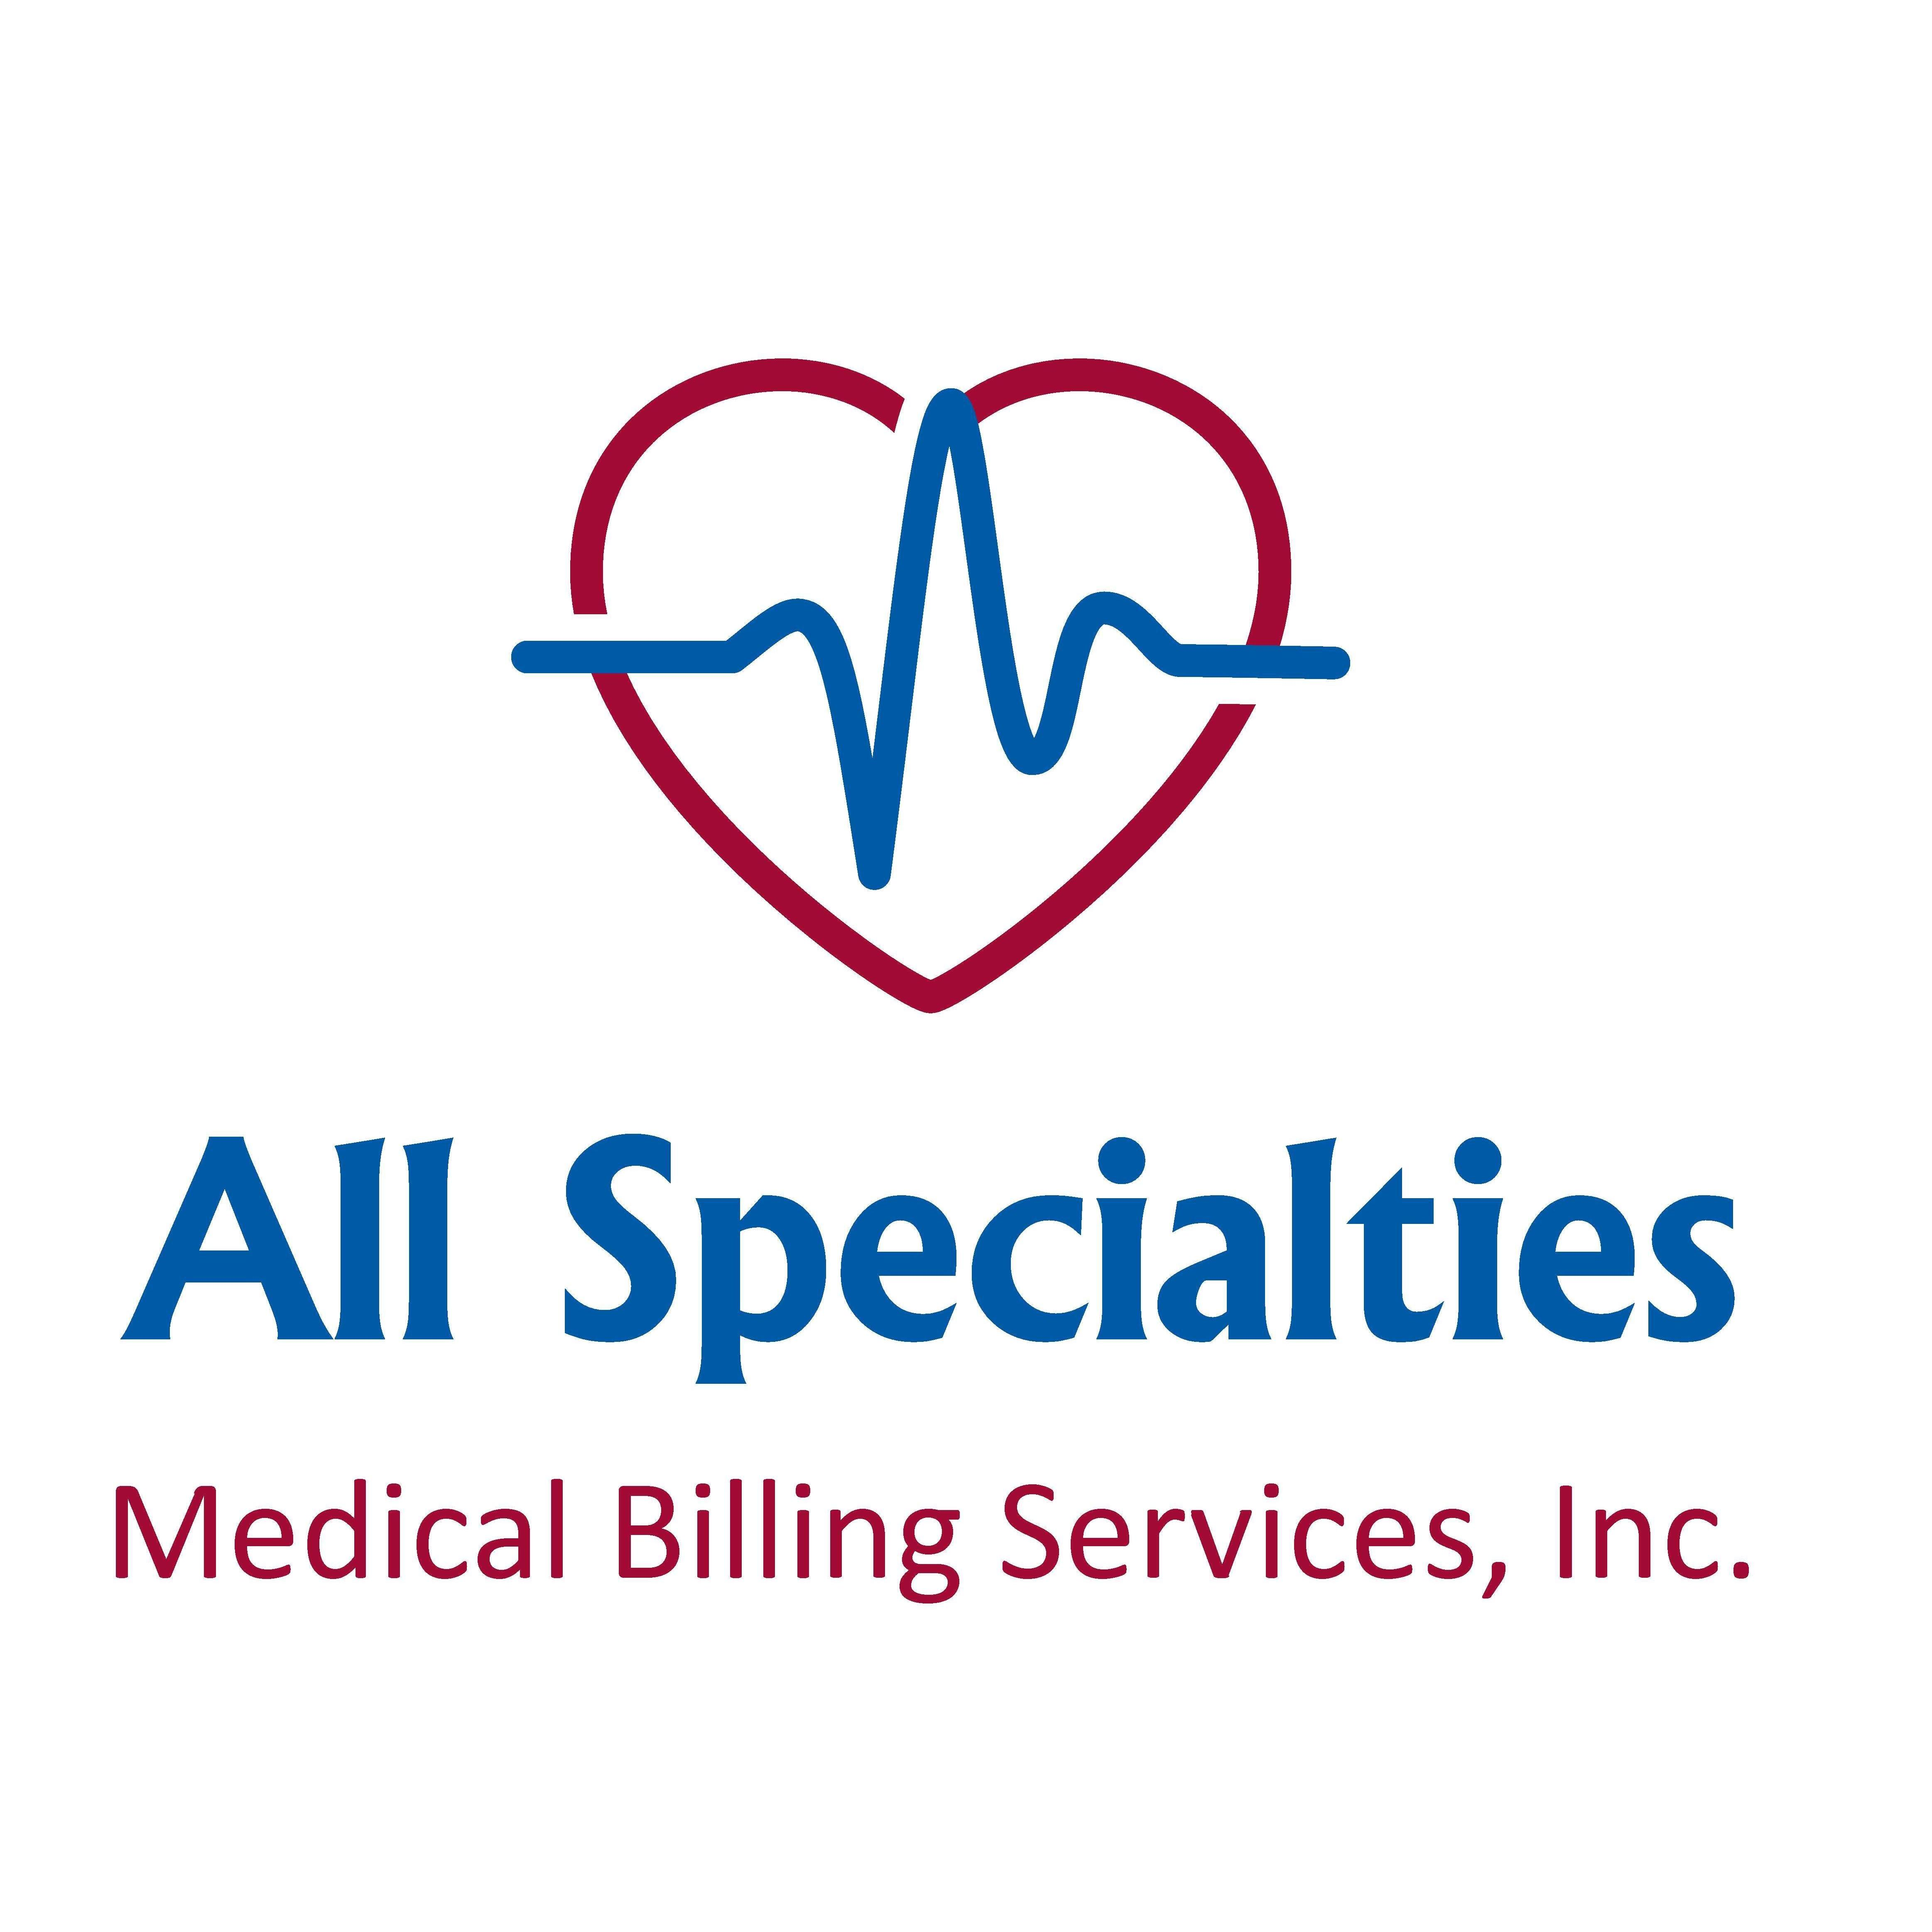 accounting hospital supply inc American hospital supply is a committed collaboration of professionals working in partnership with hospitals, clinicians, and patients to provide the highest quality health care services that meet today's expectations of excellence.